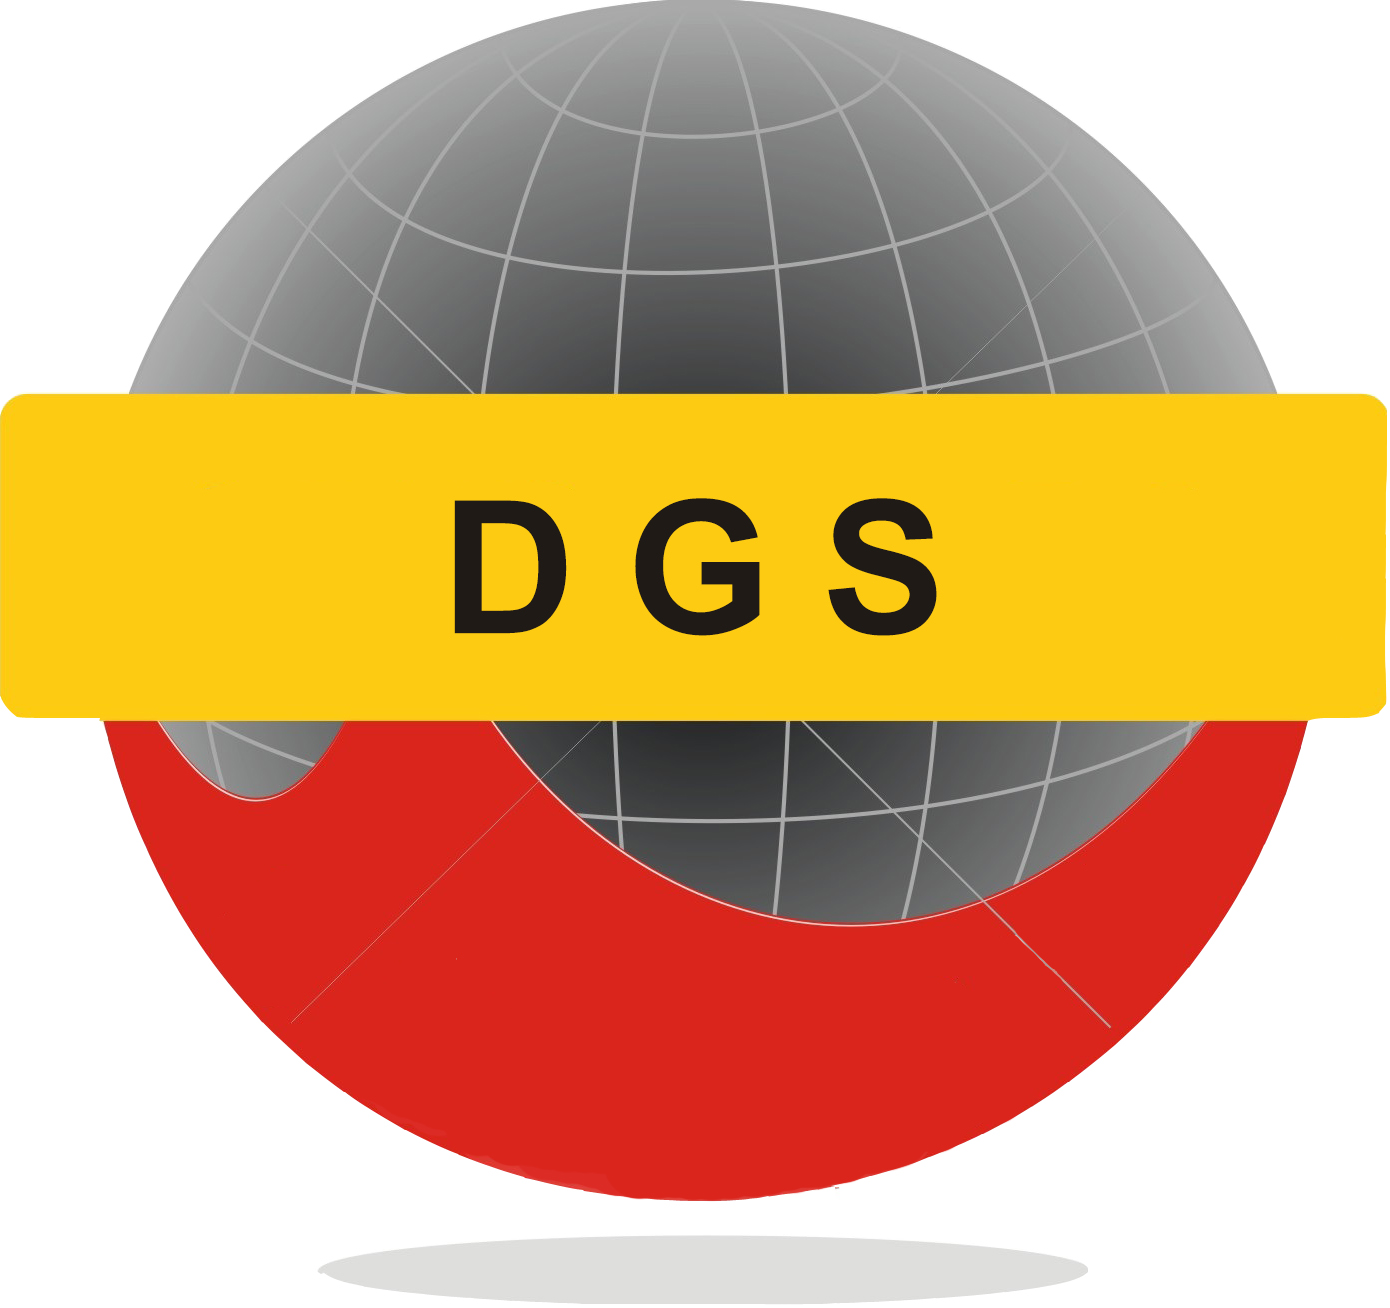 About DGS